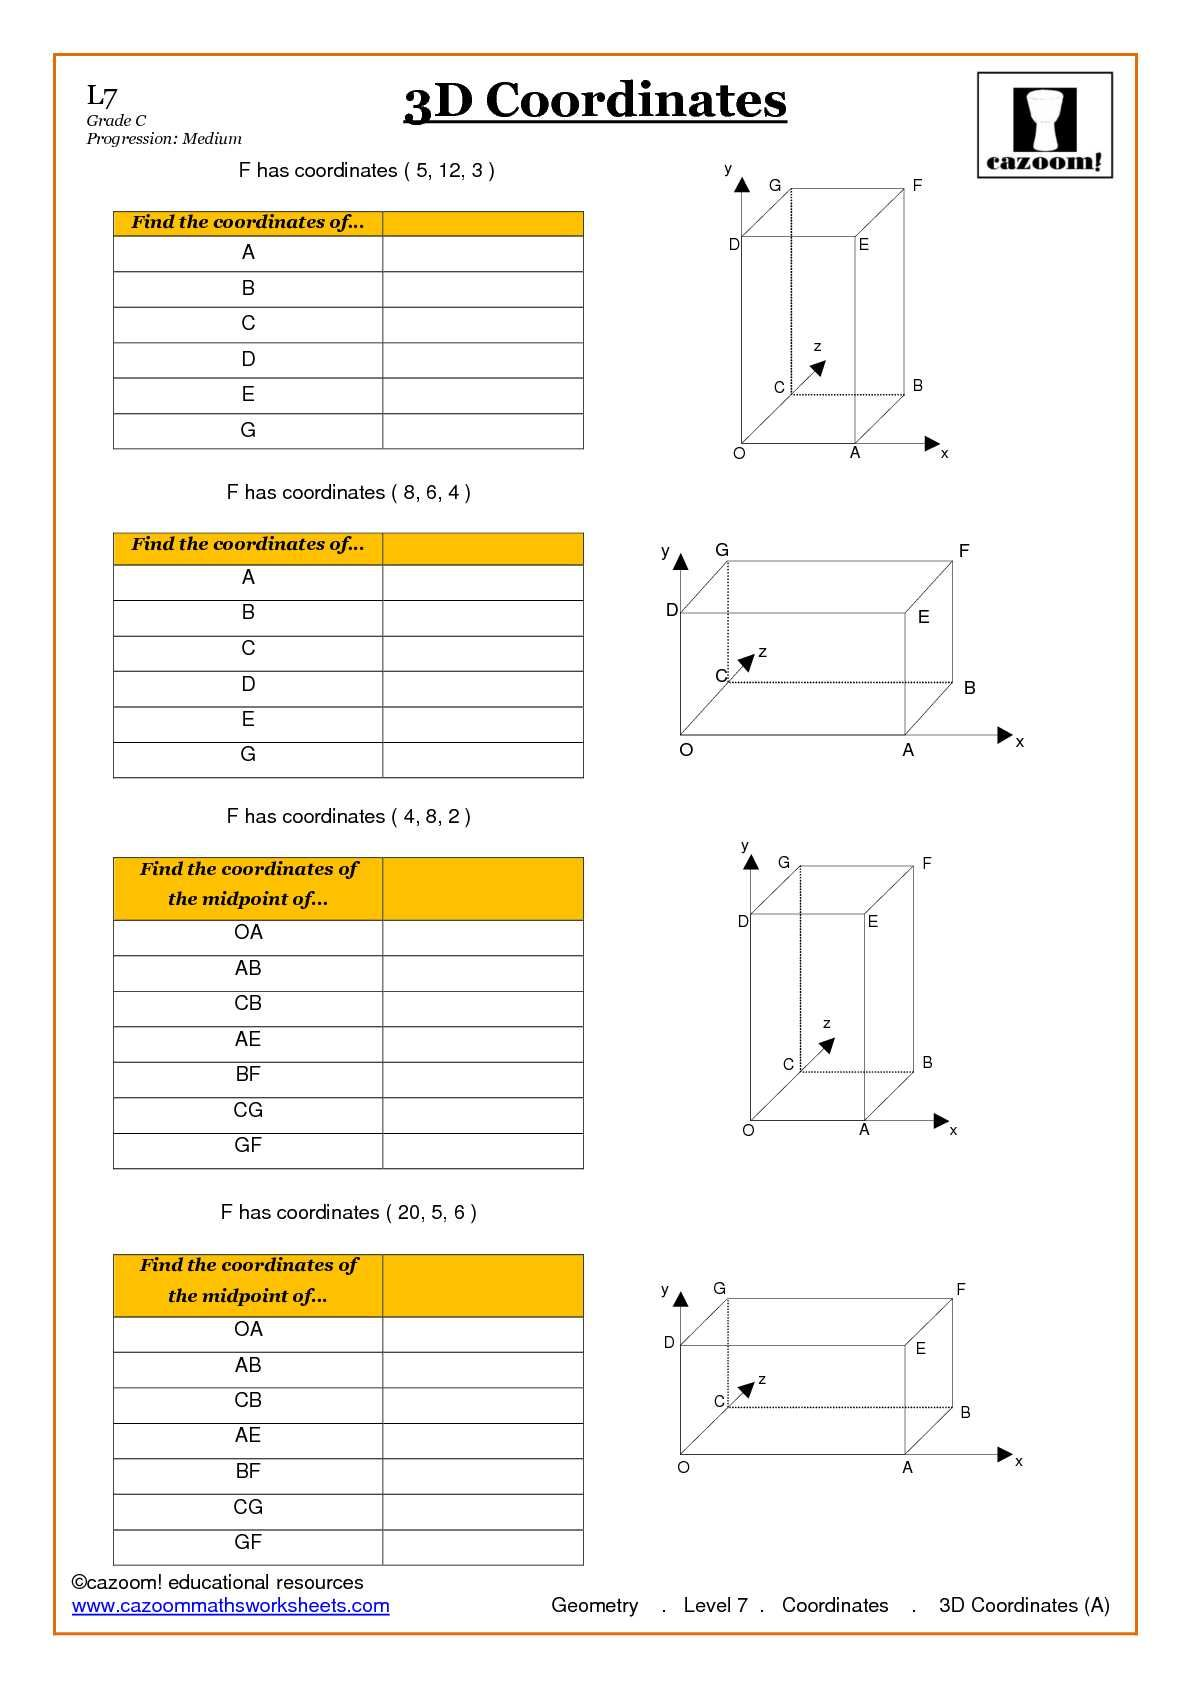 Worksheets Geometric Transformations Worksheet trigonometry and pythagoras worksheets geometry coordinate worksheet ks4 ks3